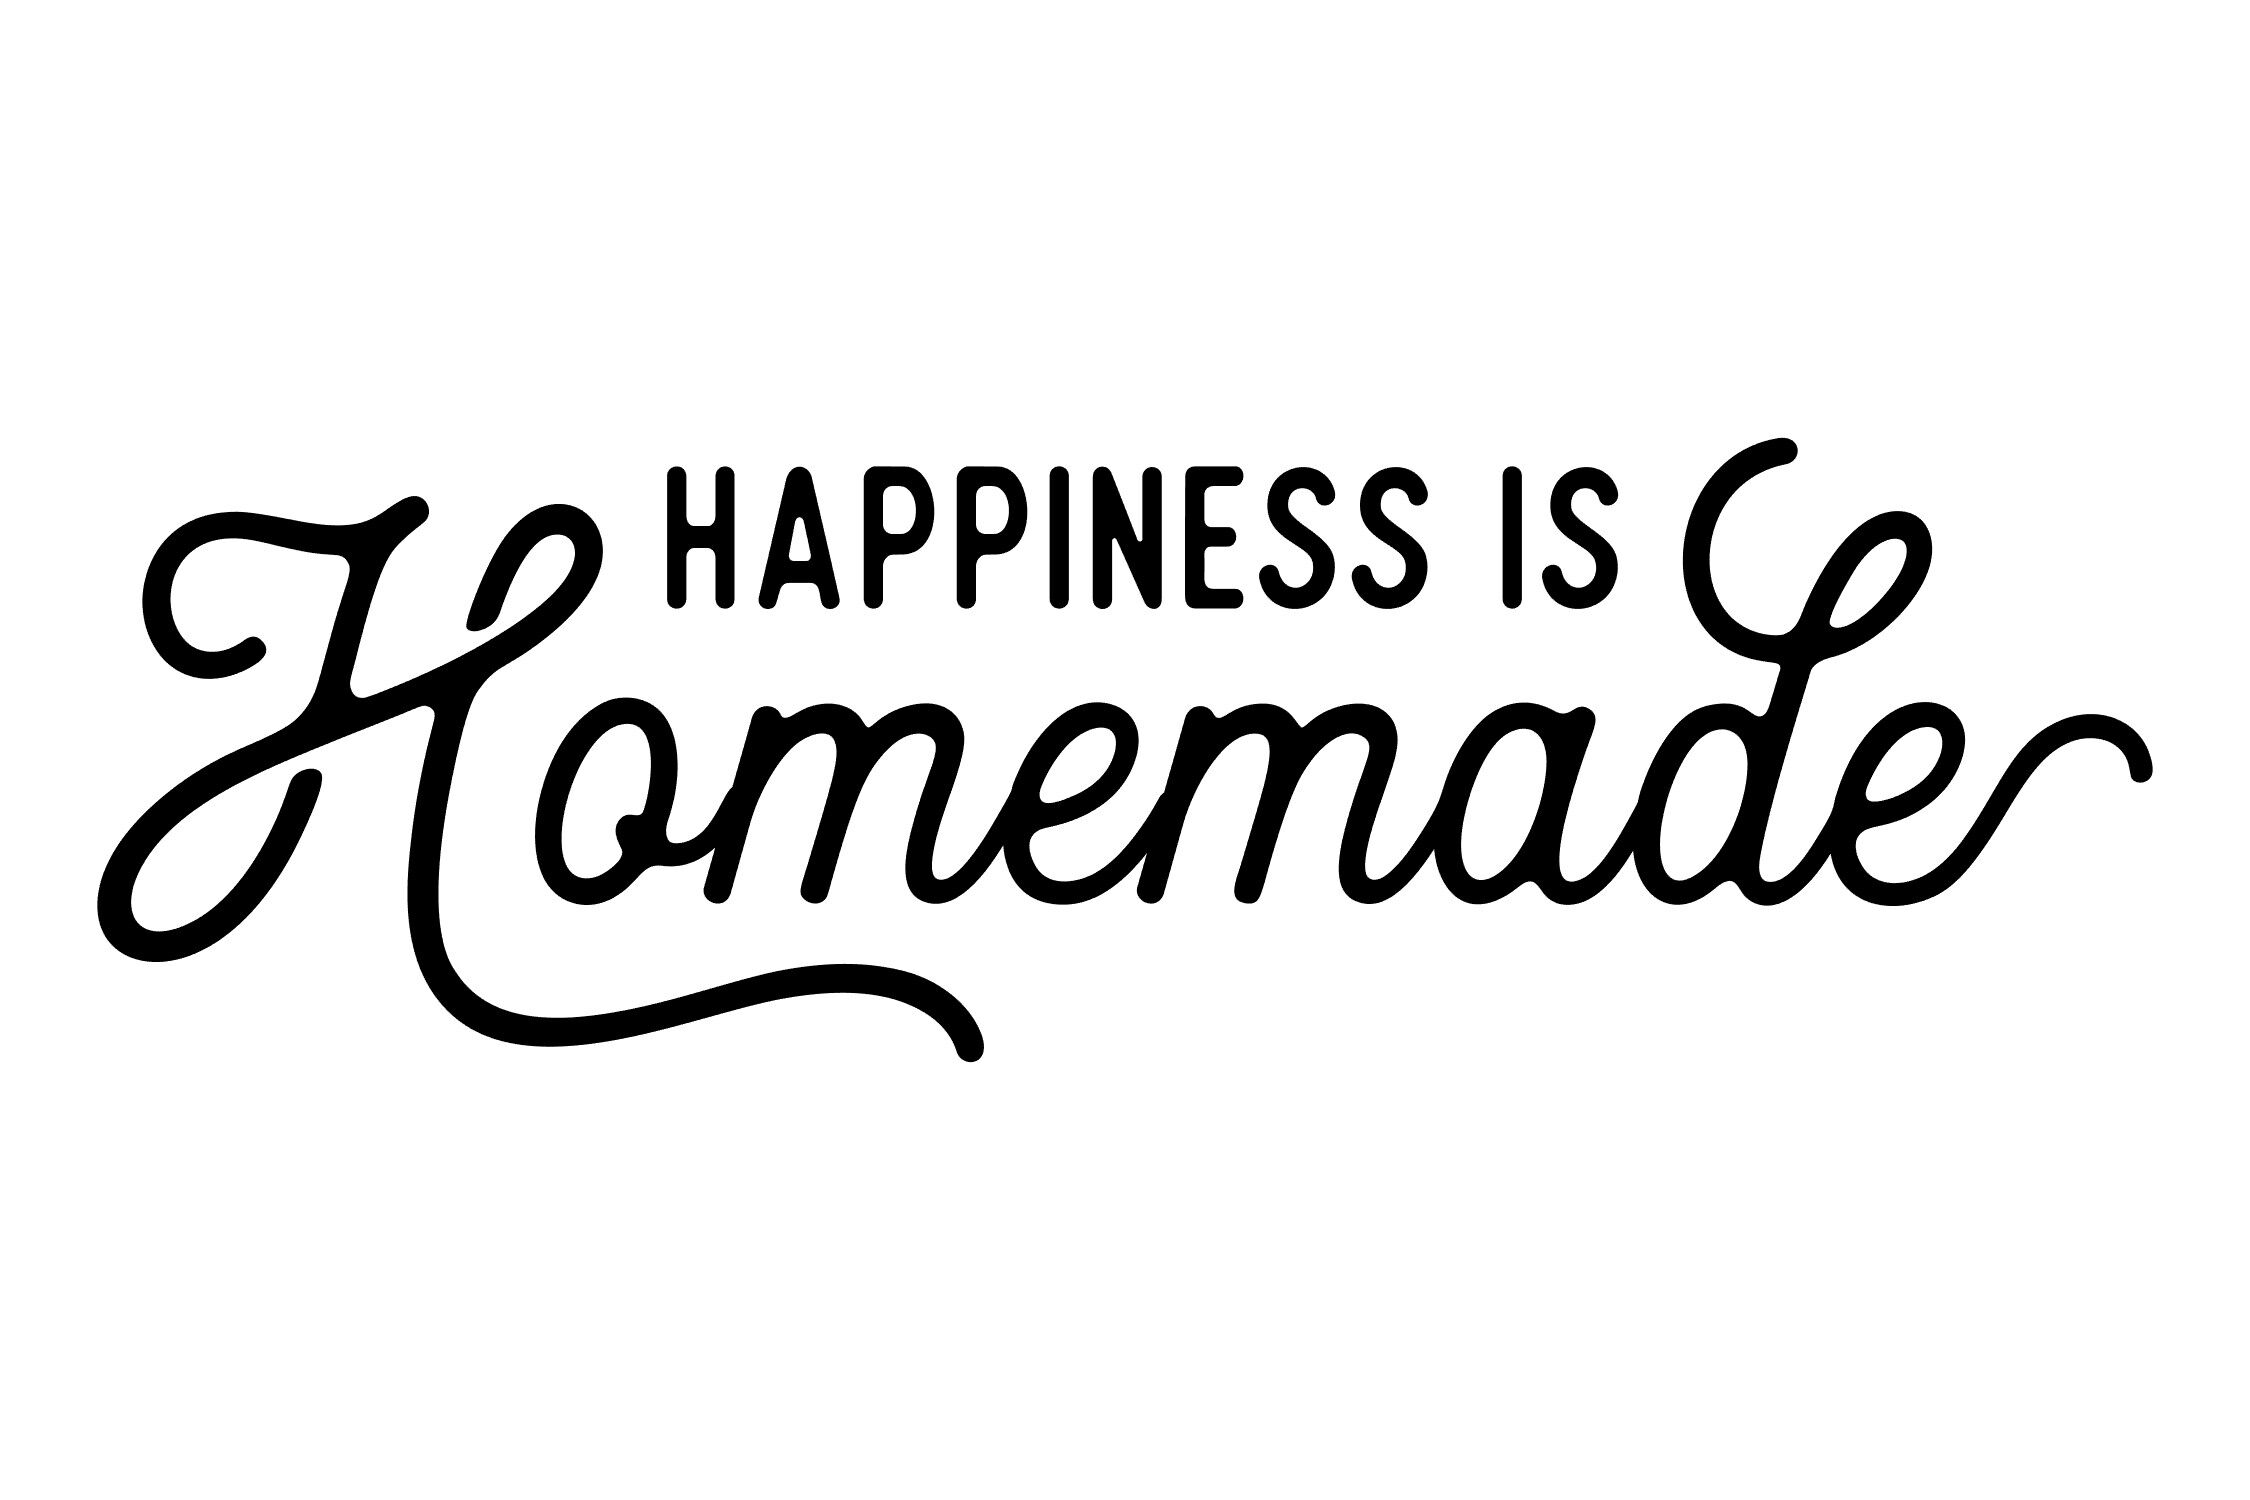 Happiness Is Homemade Svg Png Eps By Studio 26 Design Co